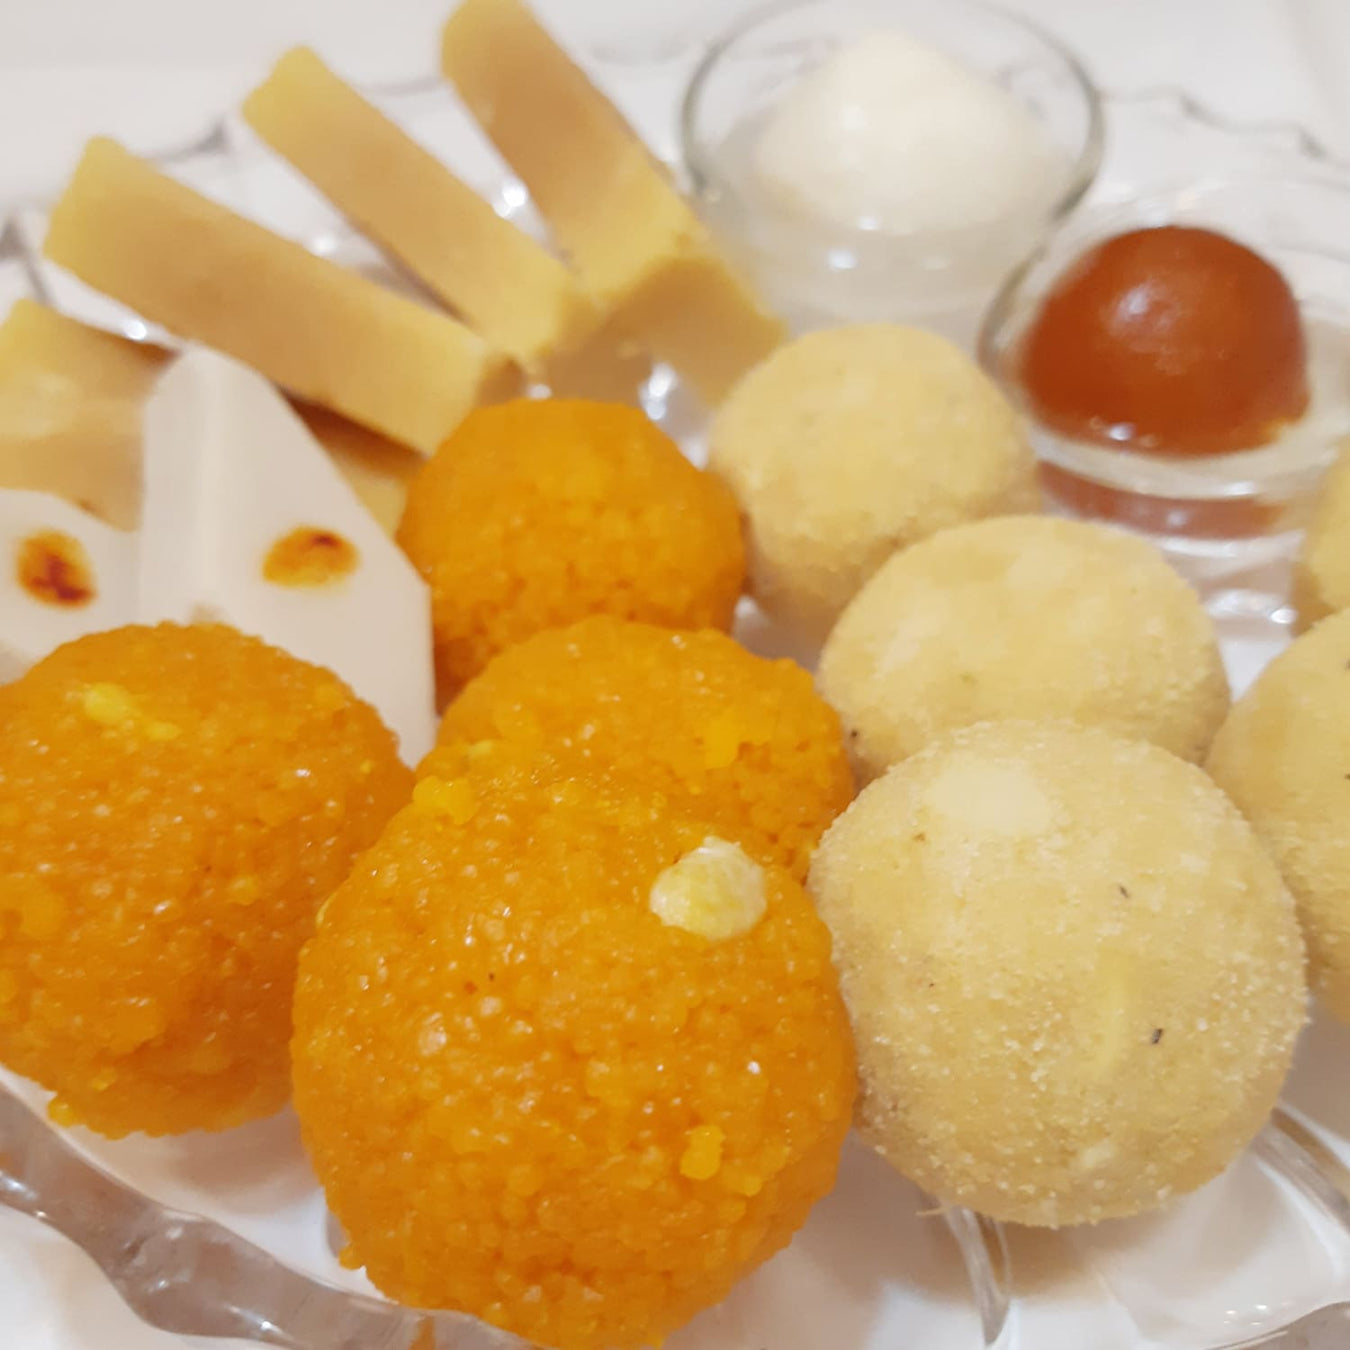 Mithai (Indian Sweets) and Mixes